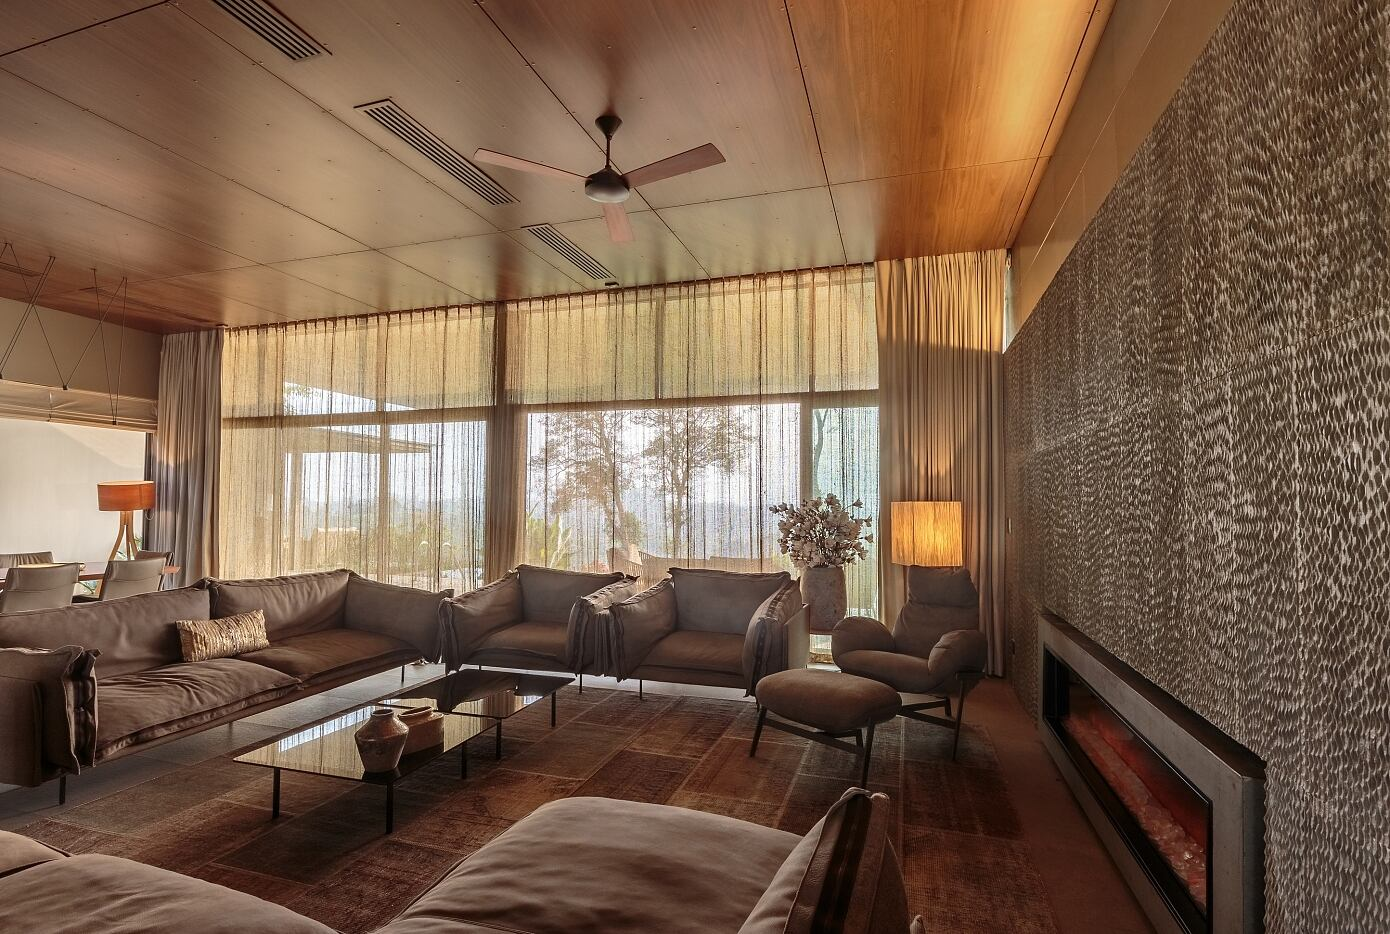 Home on the Hill by Arun Nalapat Architects